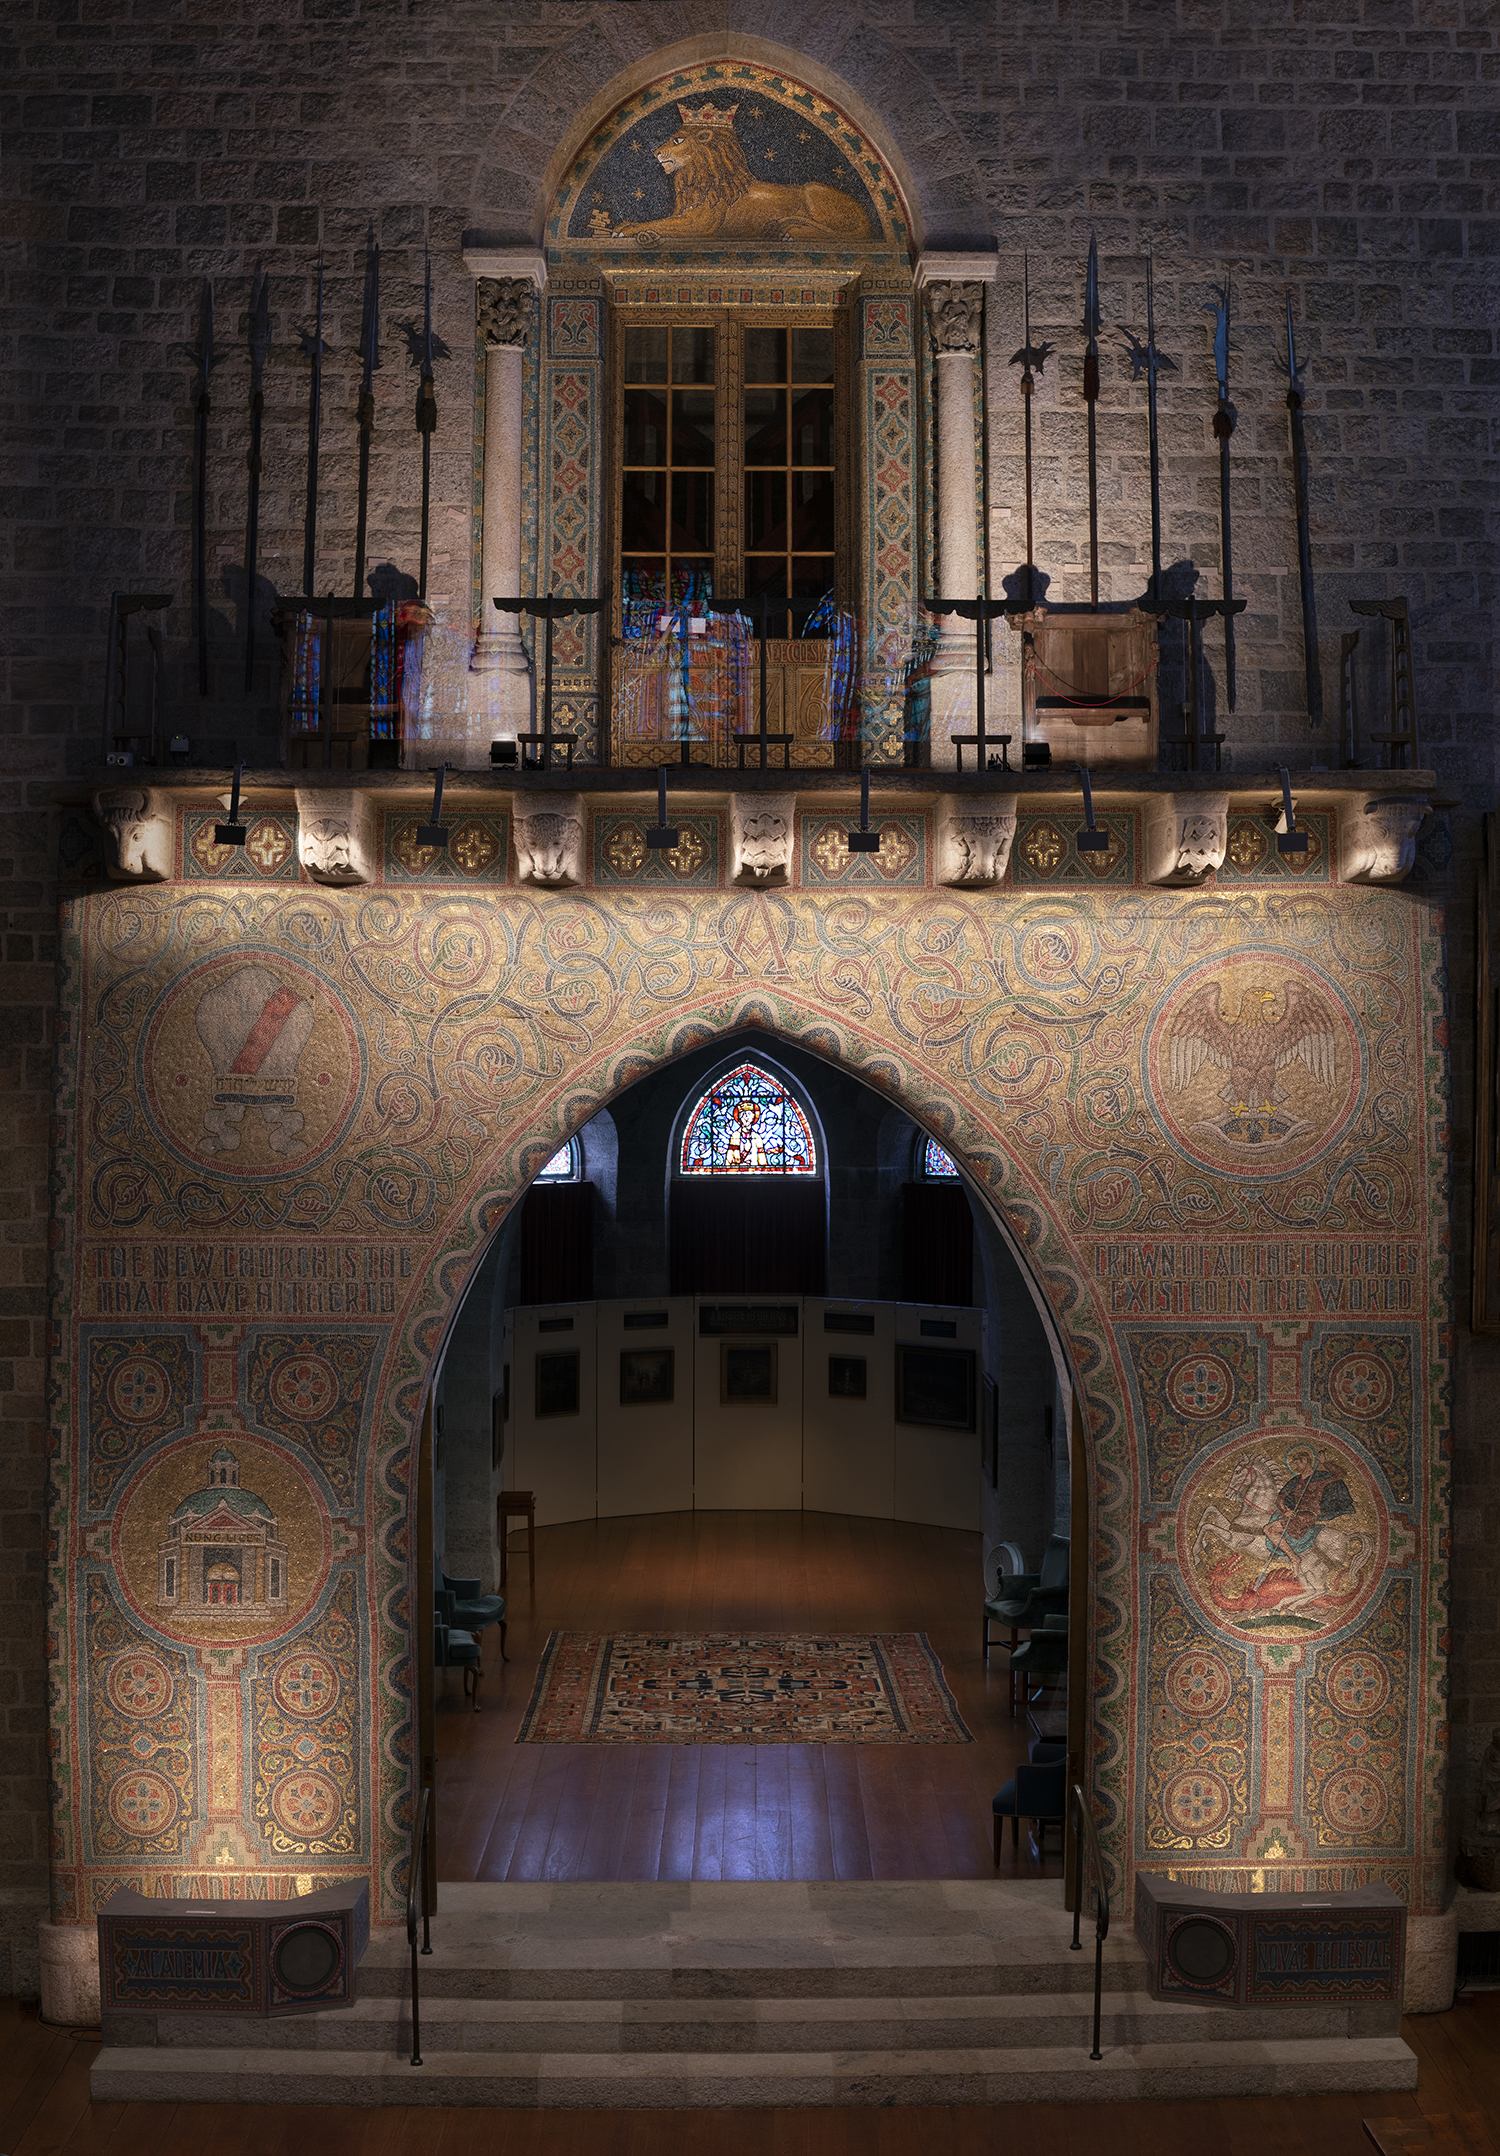 Figure 1: The Great Hall of Glencairn features a monumental version of the Academy seal in glass mosaic. It reaches above the third floor balcony, culminating in a representation of a crowned lion with keys beneath his paws.